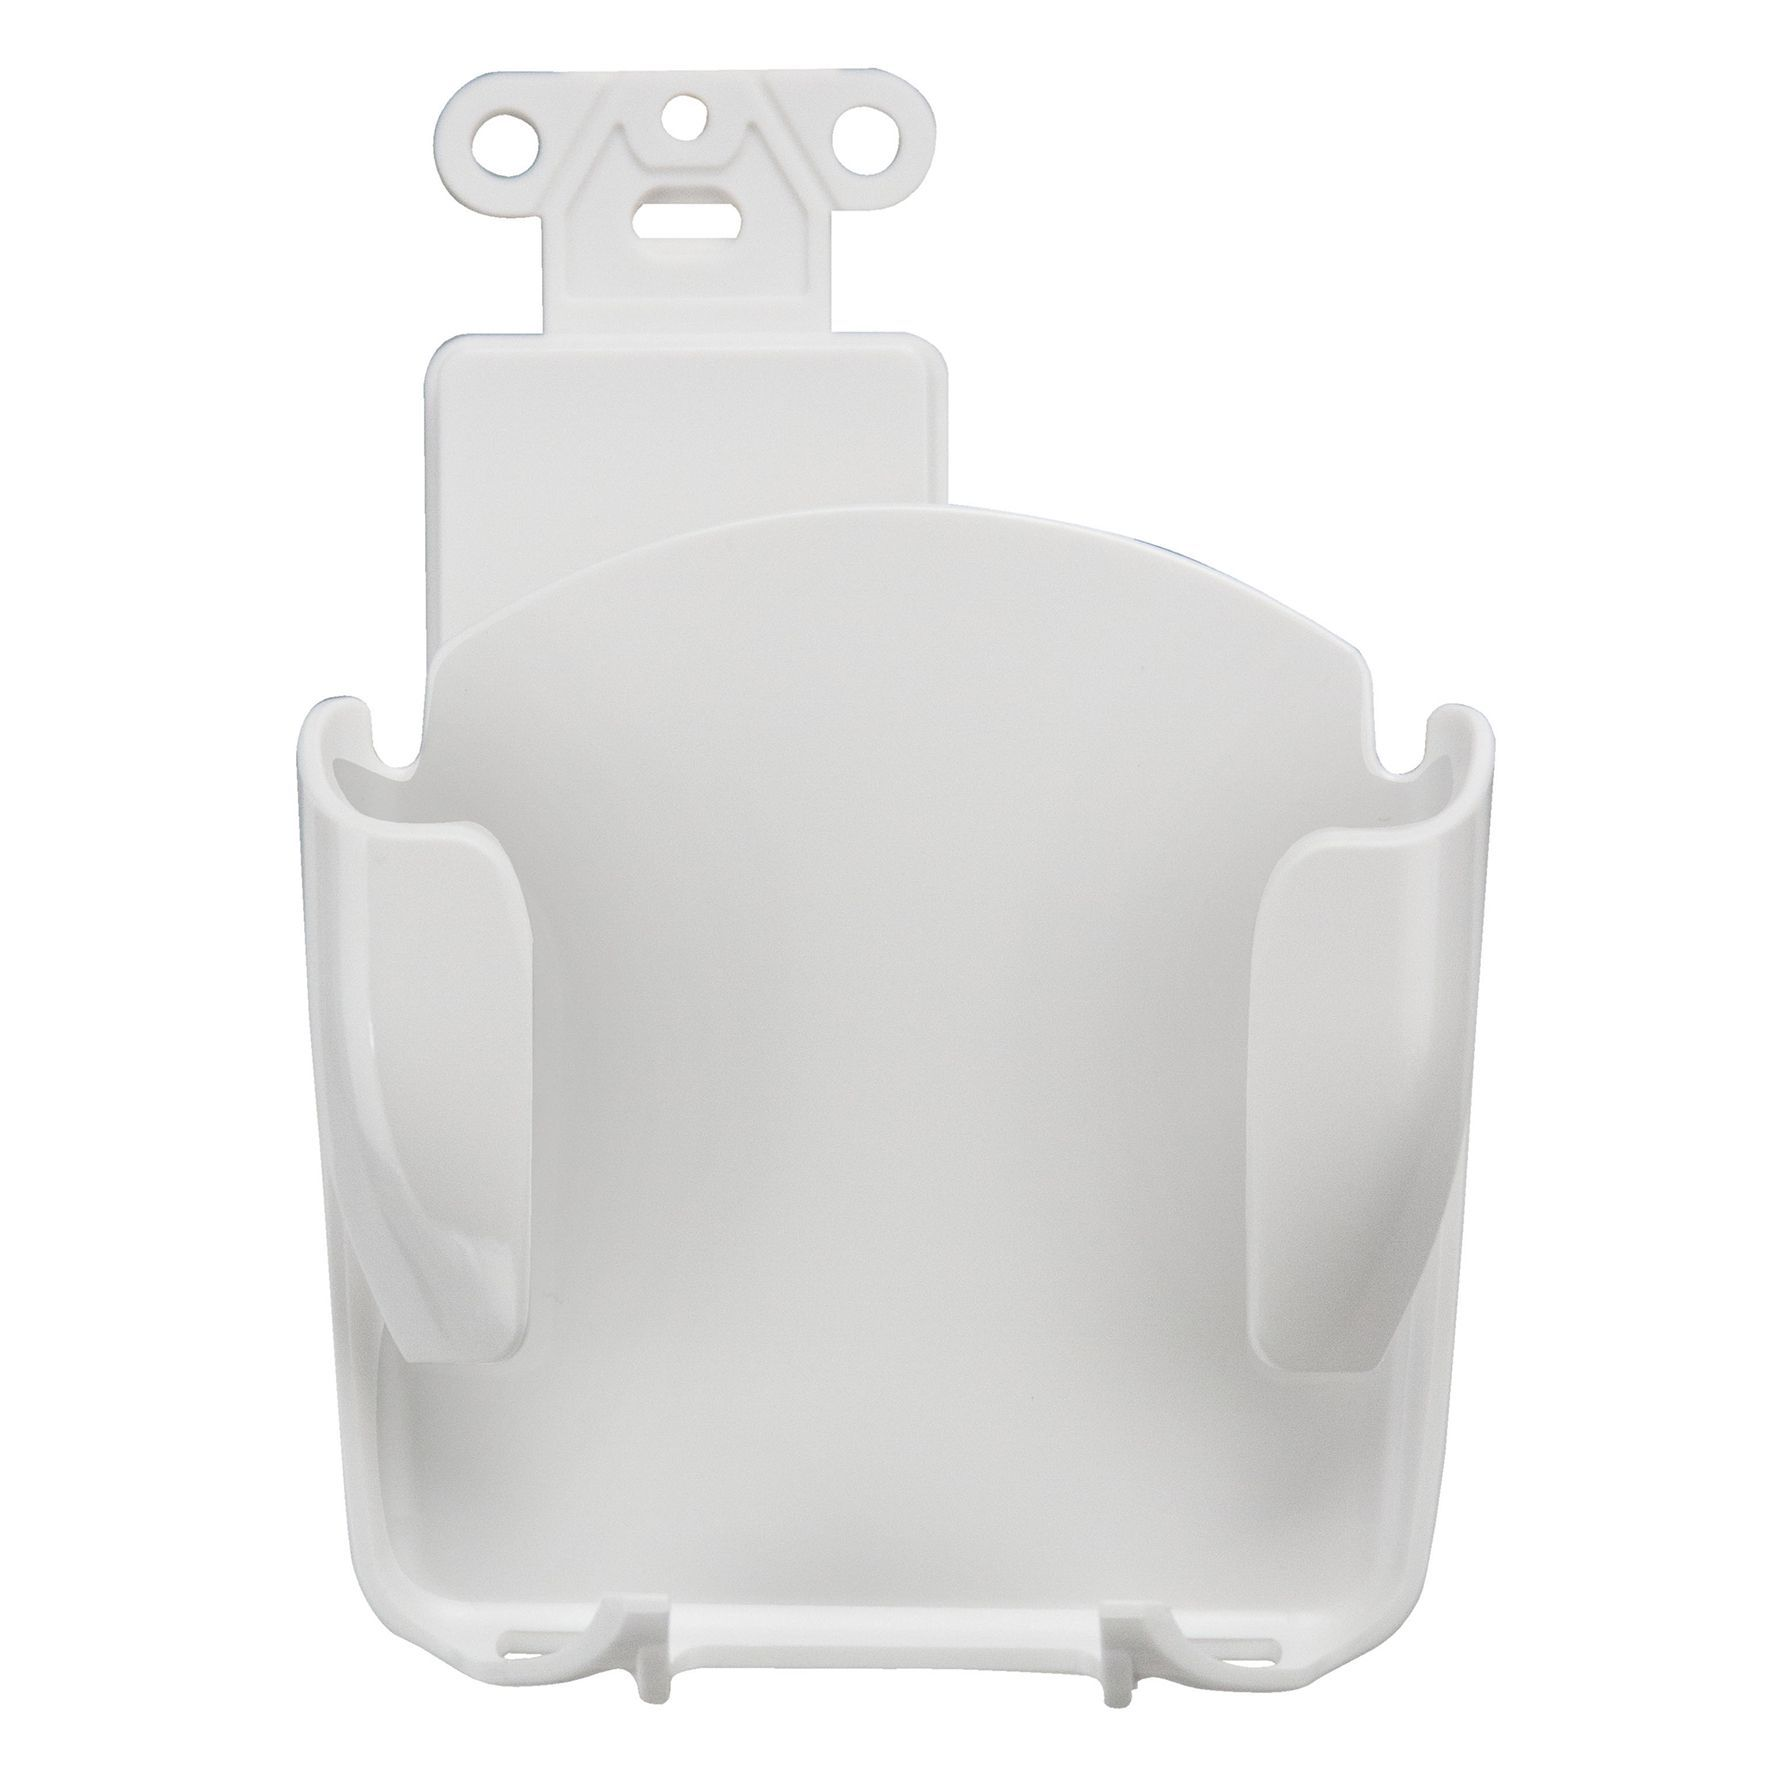 Leviton 010-47112-00W Mobile Device Holder | Products | Pinterest ...